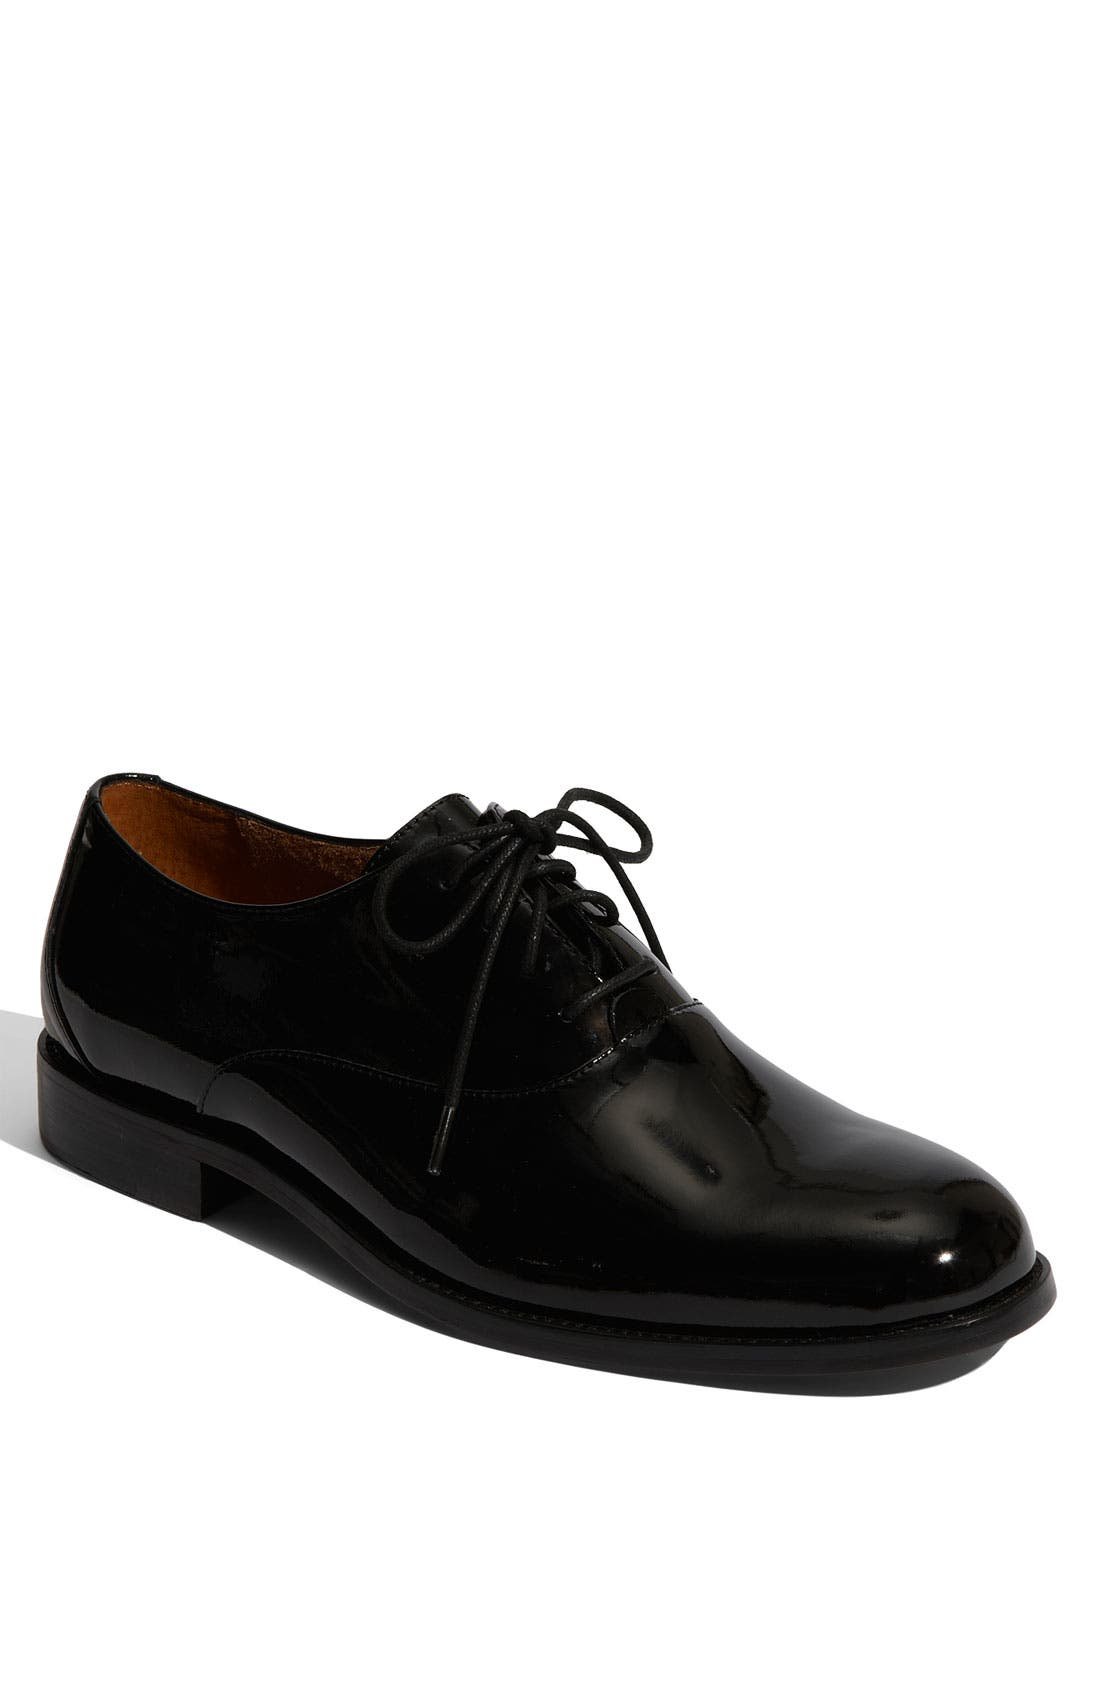 'Kingston' Patent Leather Oxford, Main, color, 002